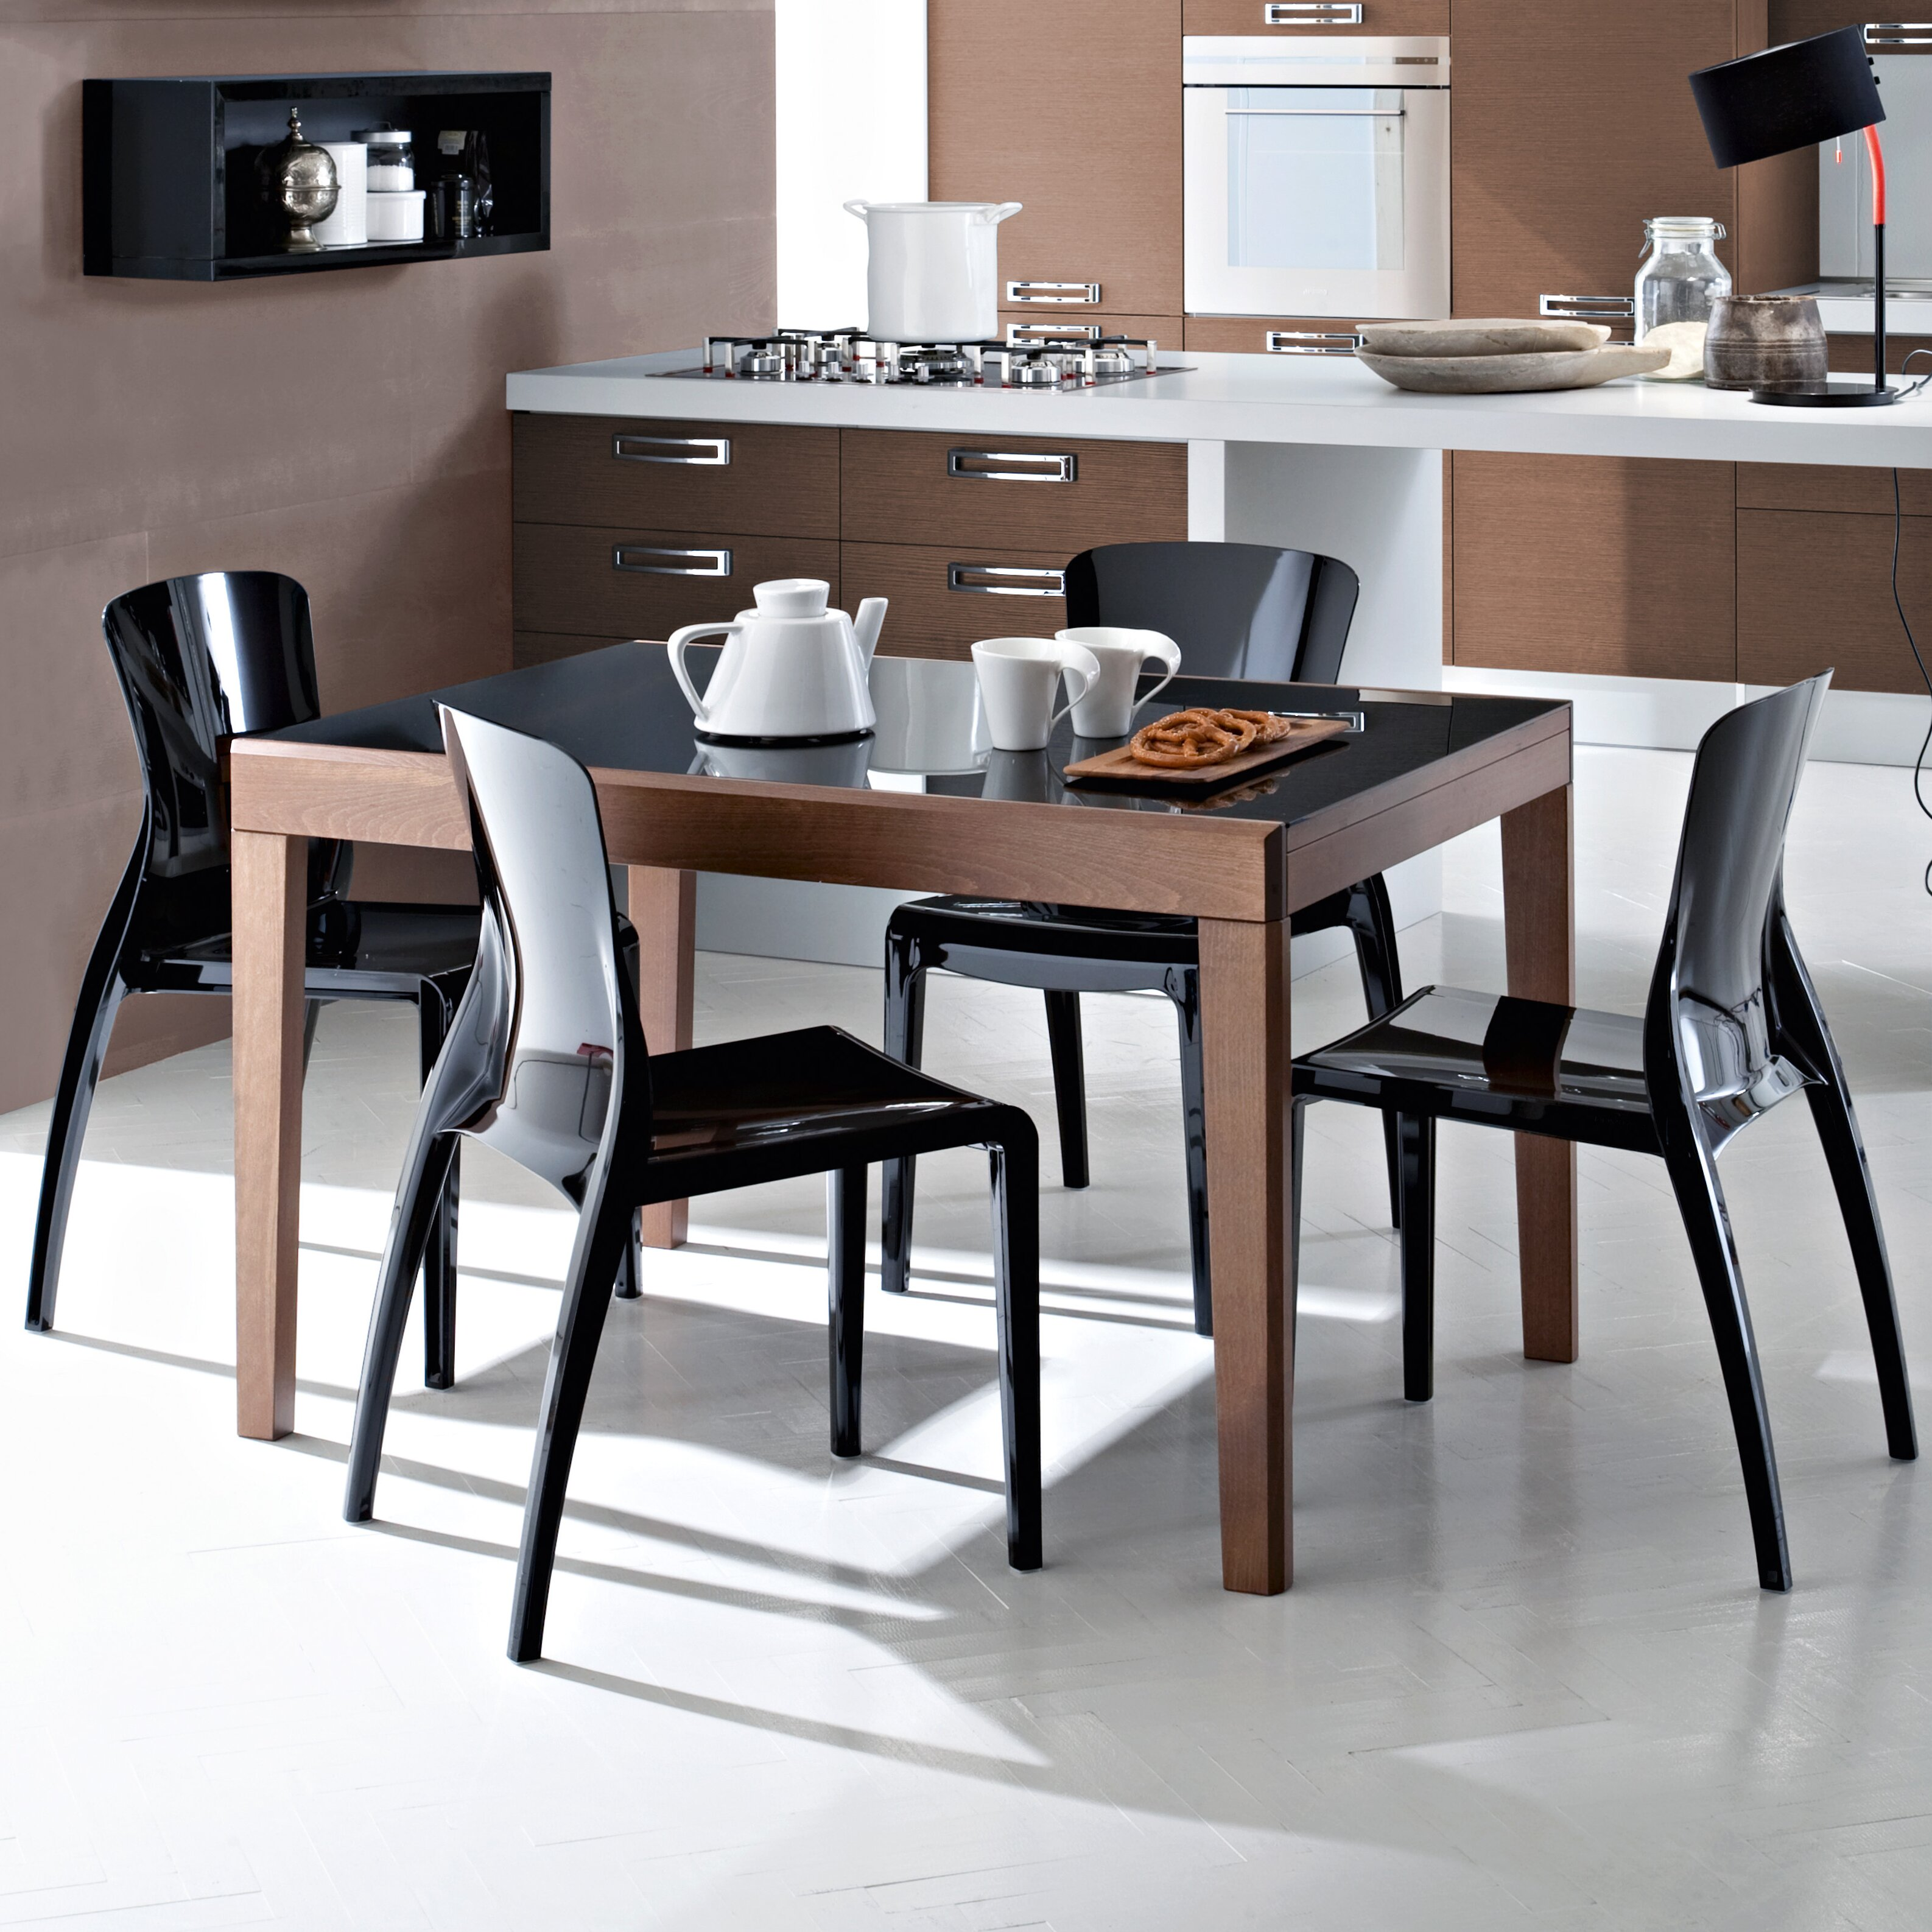 Domitalia asso extendable dining table reviews wayfair uk for Domitalia stone t dining table